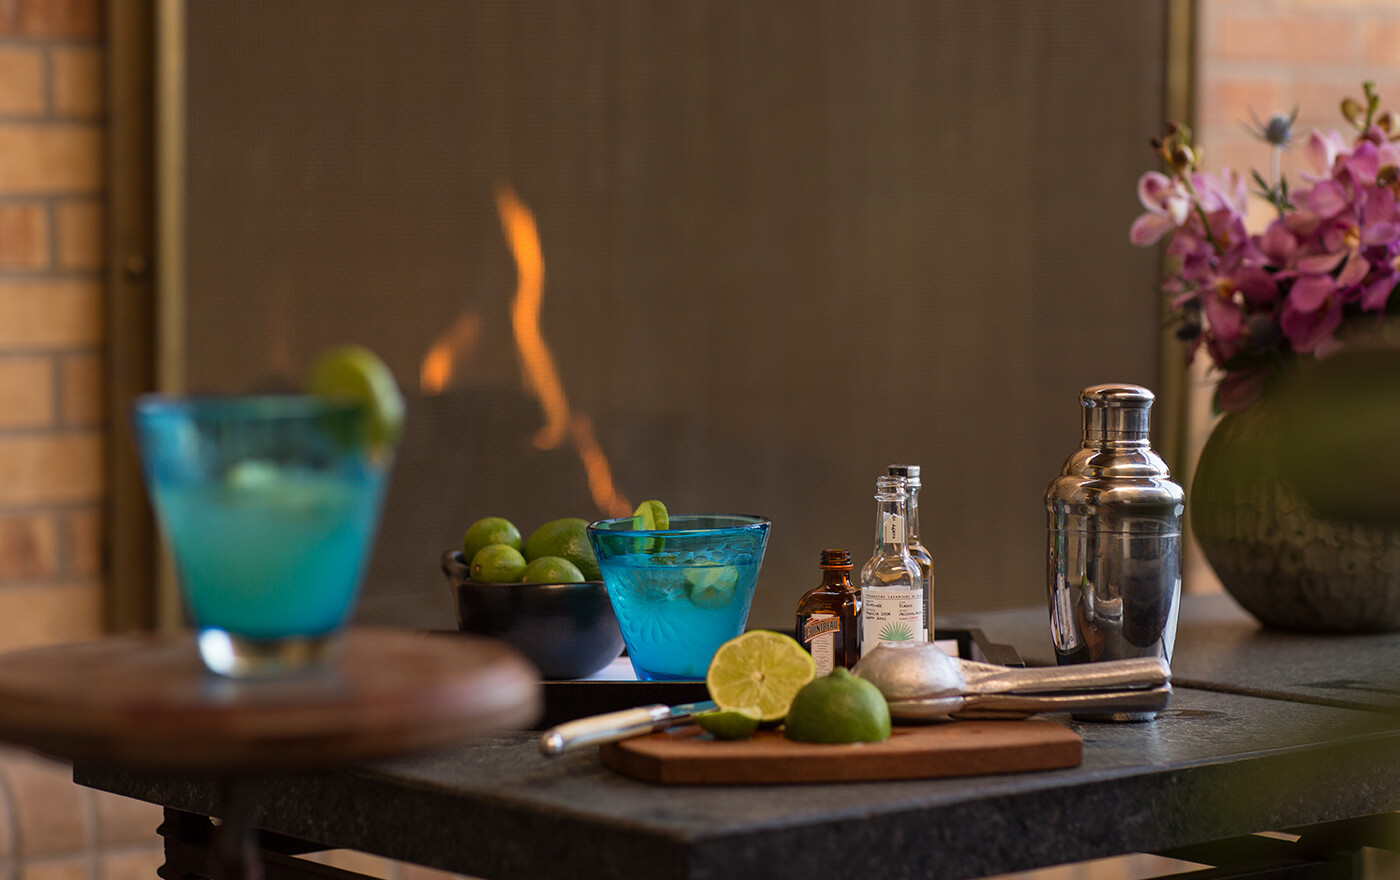 A picture of cocktails pictured on a table with limes.